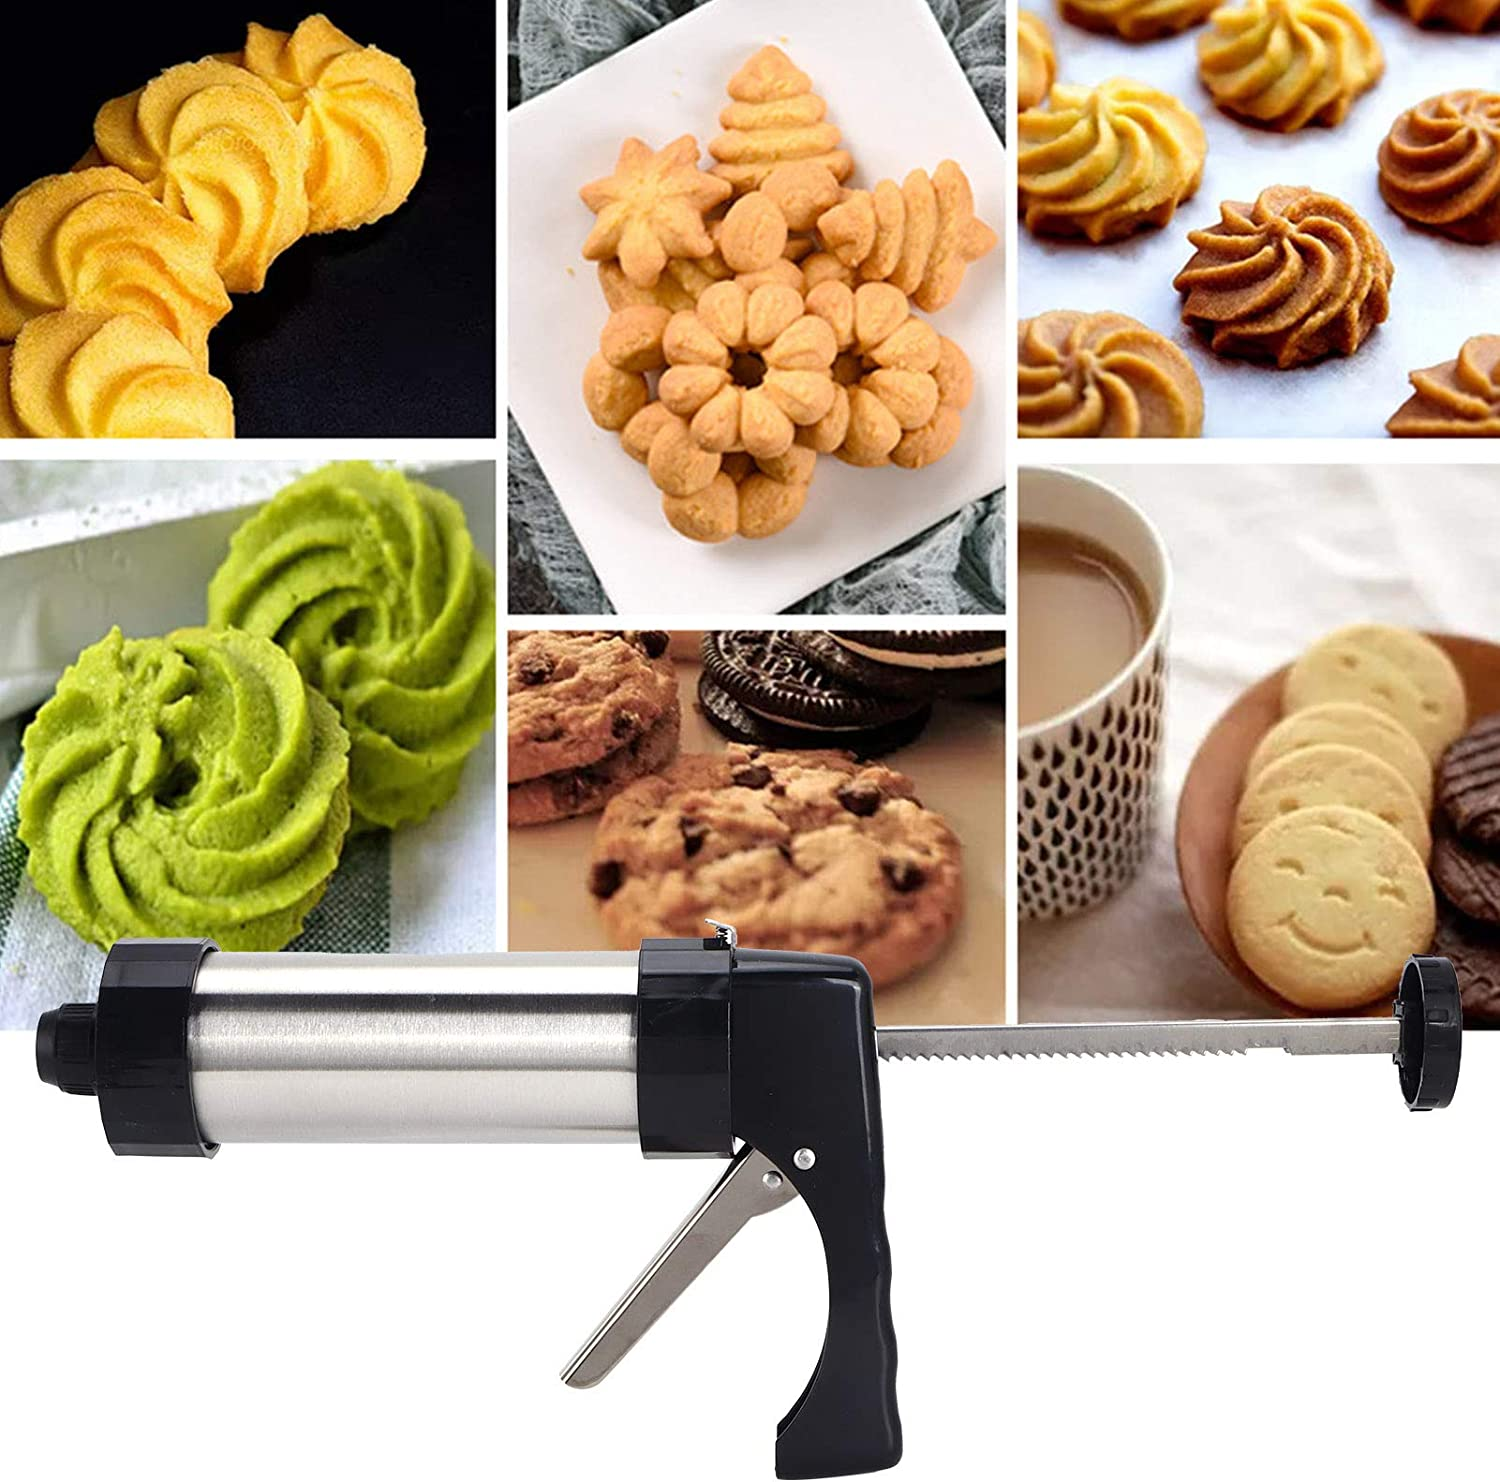 Cookies Press Kit Convenient To Maker Foodgrade Biscuits Use Nippon regular agency St Oakland Mall